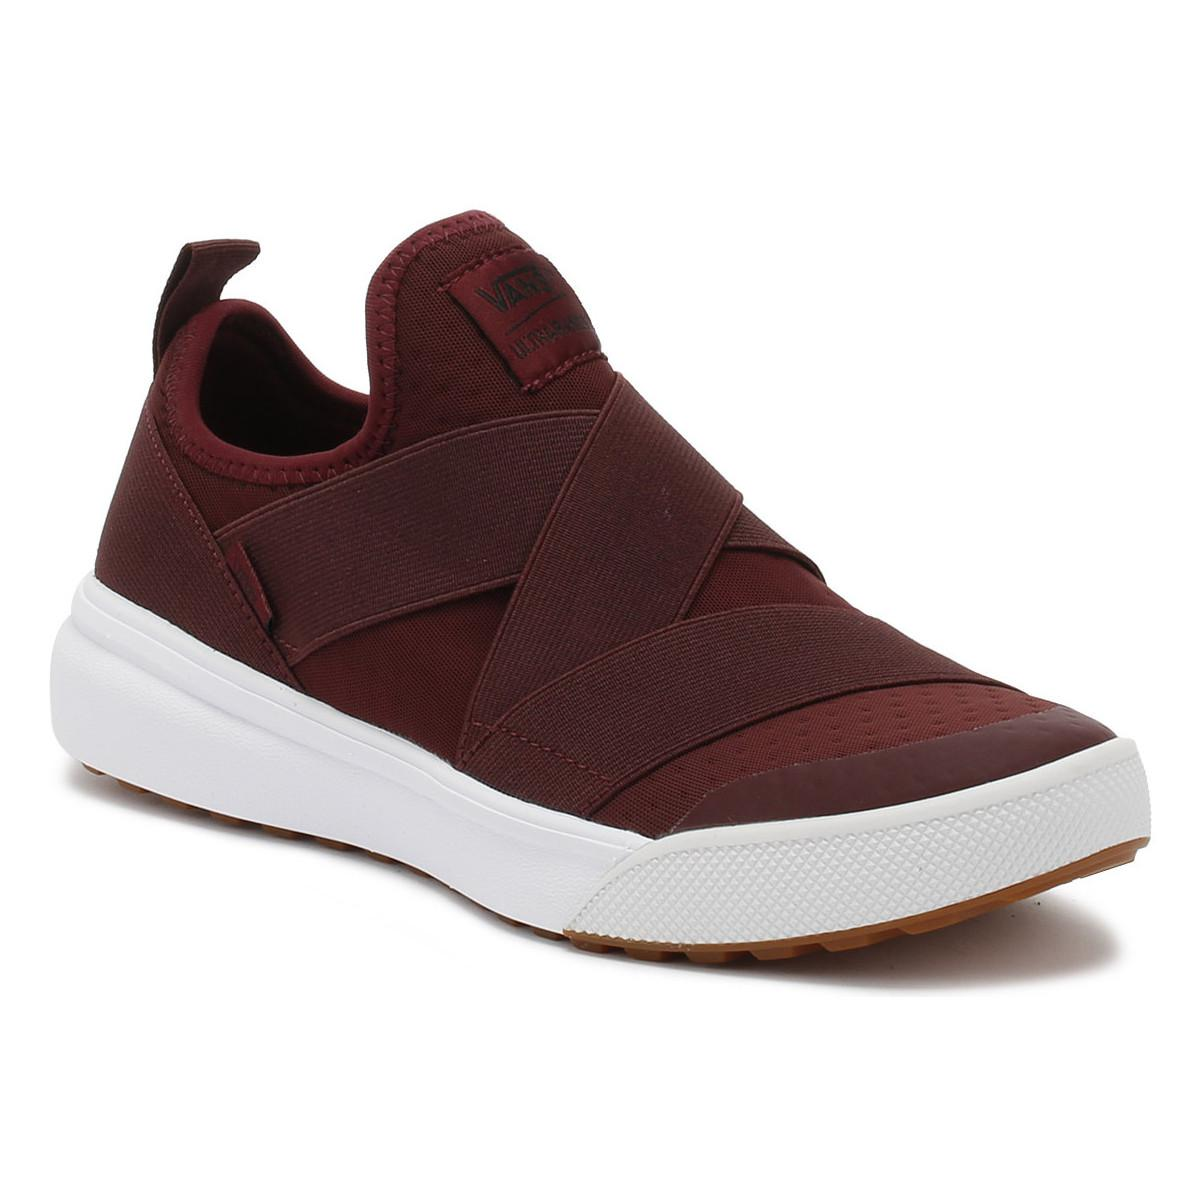 Vans. Port Royale Burgundy Ultrarange Gore Trainers Women s Slip-ons (shoes)  In Red 92d174e1d